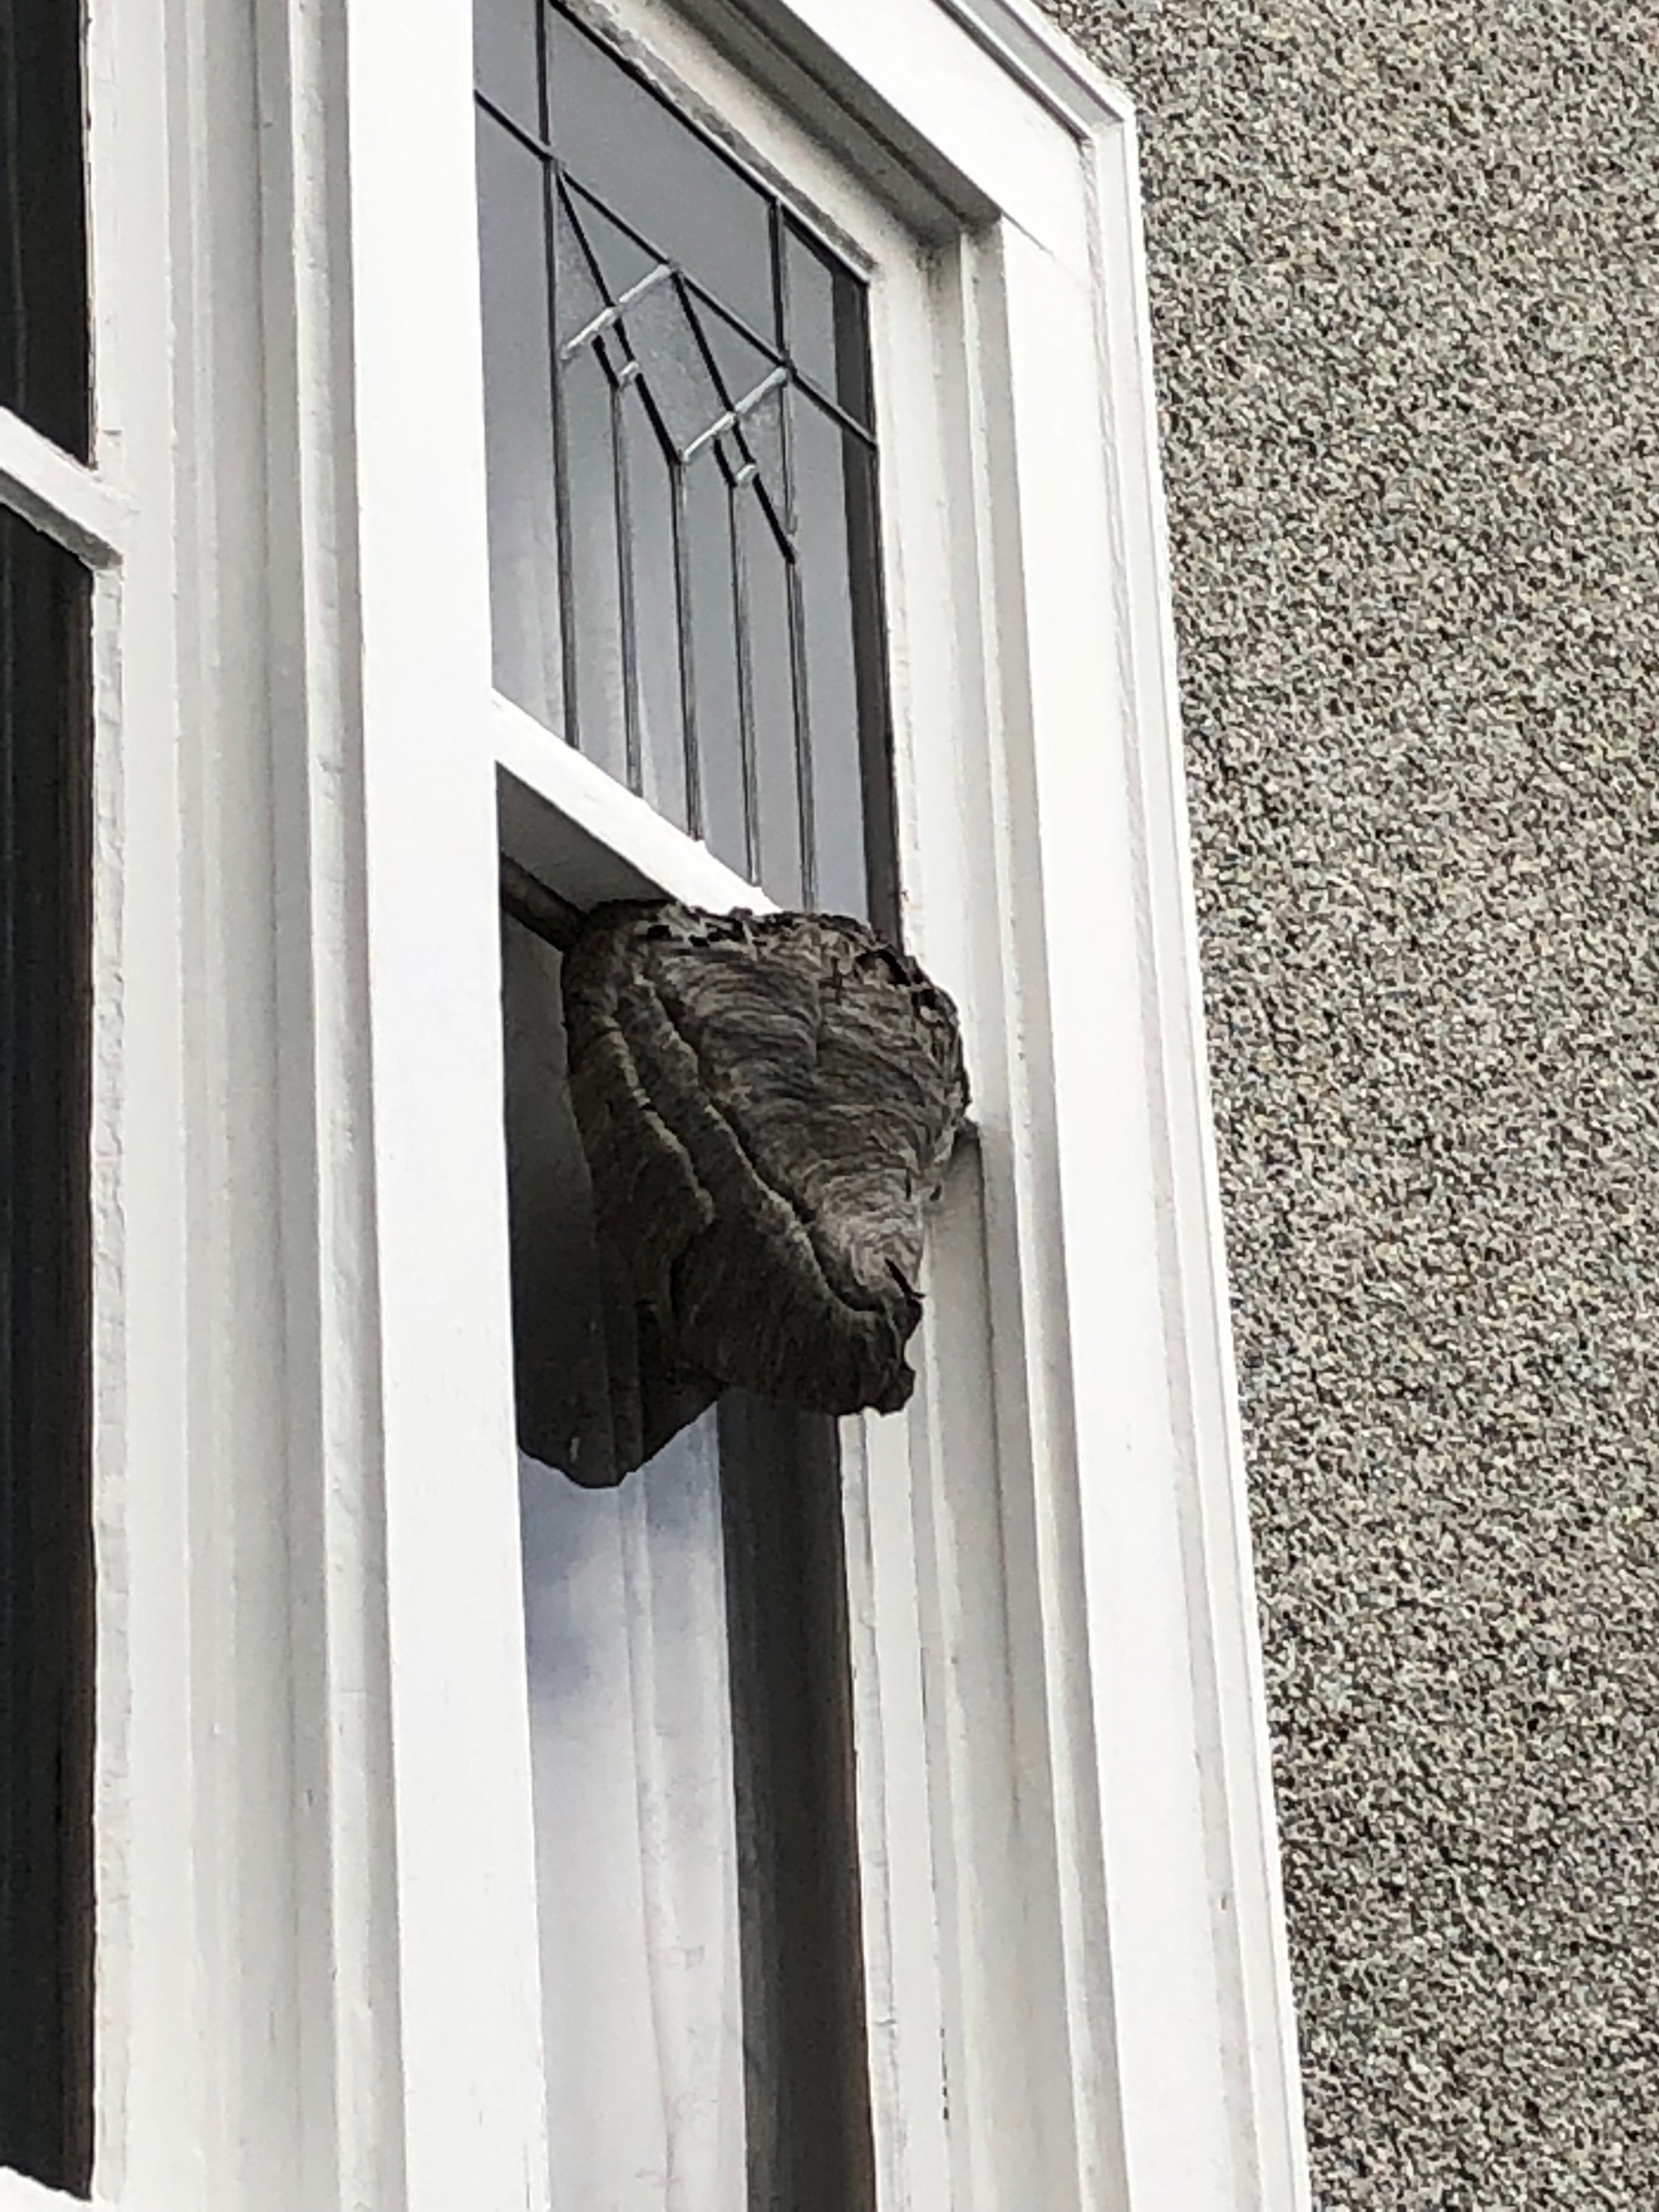 Very interesting place for a wasp nest, even more interesting is that the owners didn't notice.